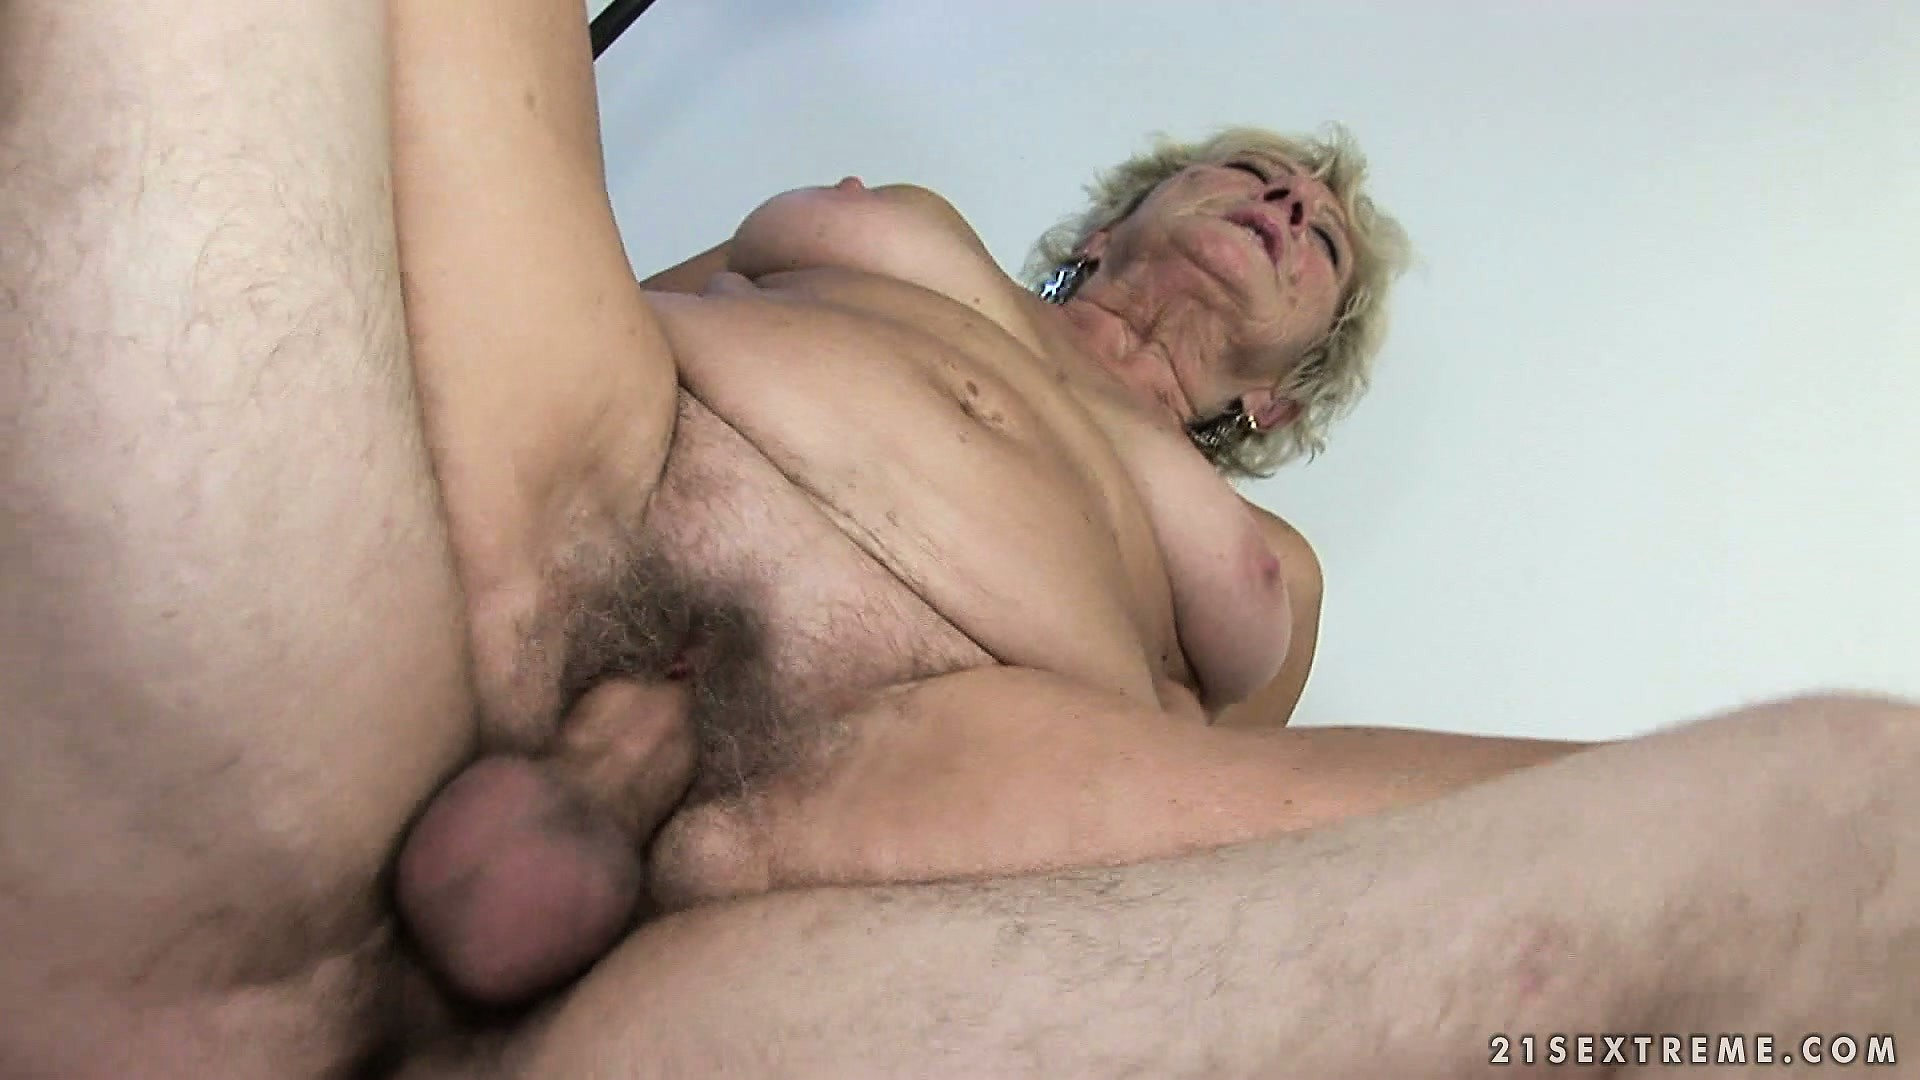 Porno Video of Blonde Granny Gets Filled In Her Furry Bush With A Nice Young Fuck Stick